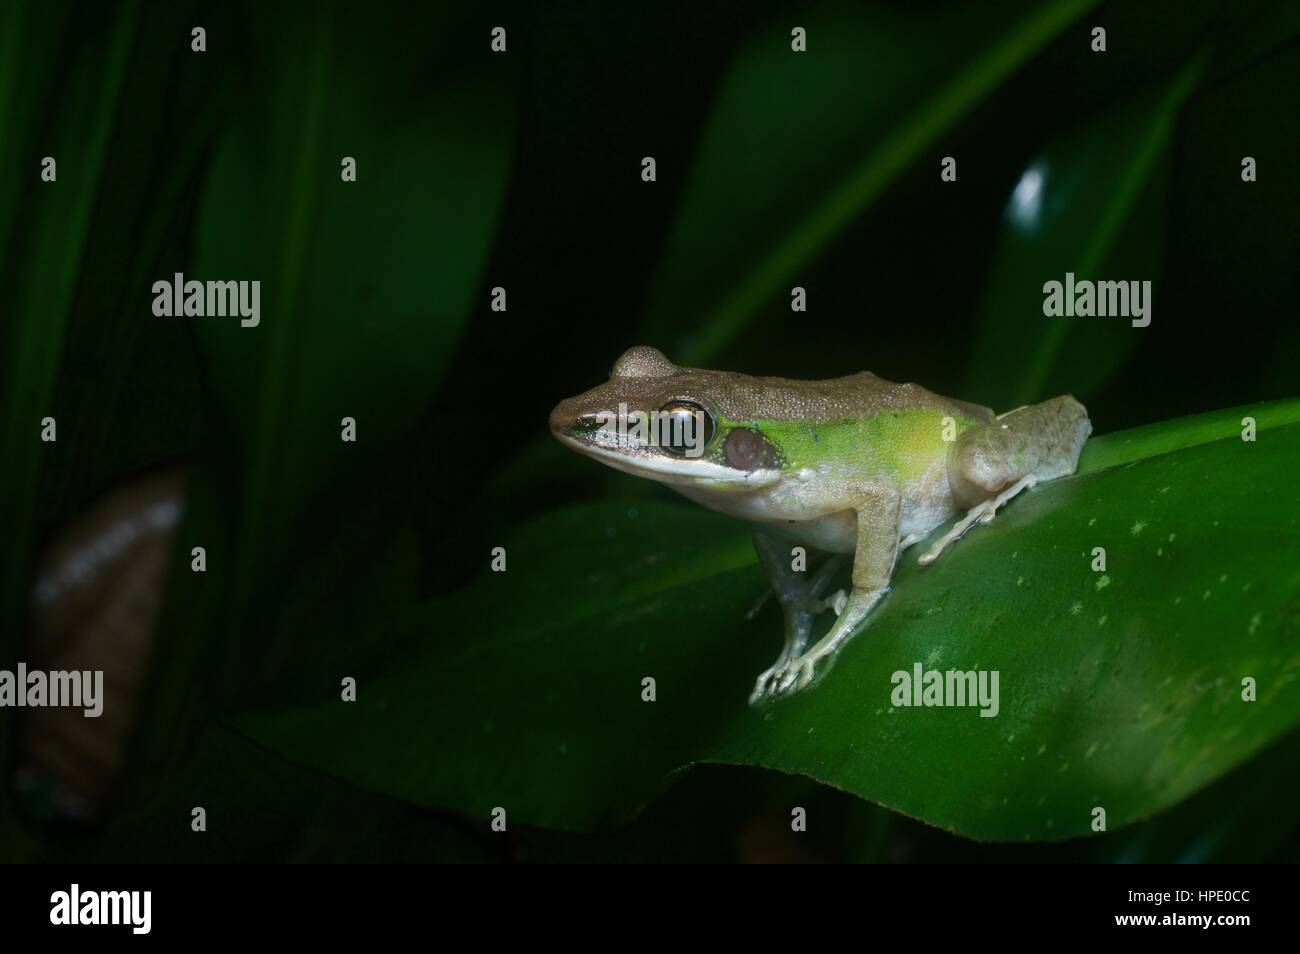 A White-lipped Frog (Chalcorana labialis) on a leaf at night in the rainforest in Ulu Yam, Selangor, Malaysia - Stock Image